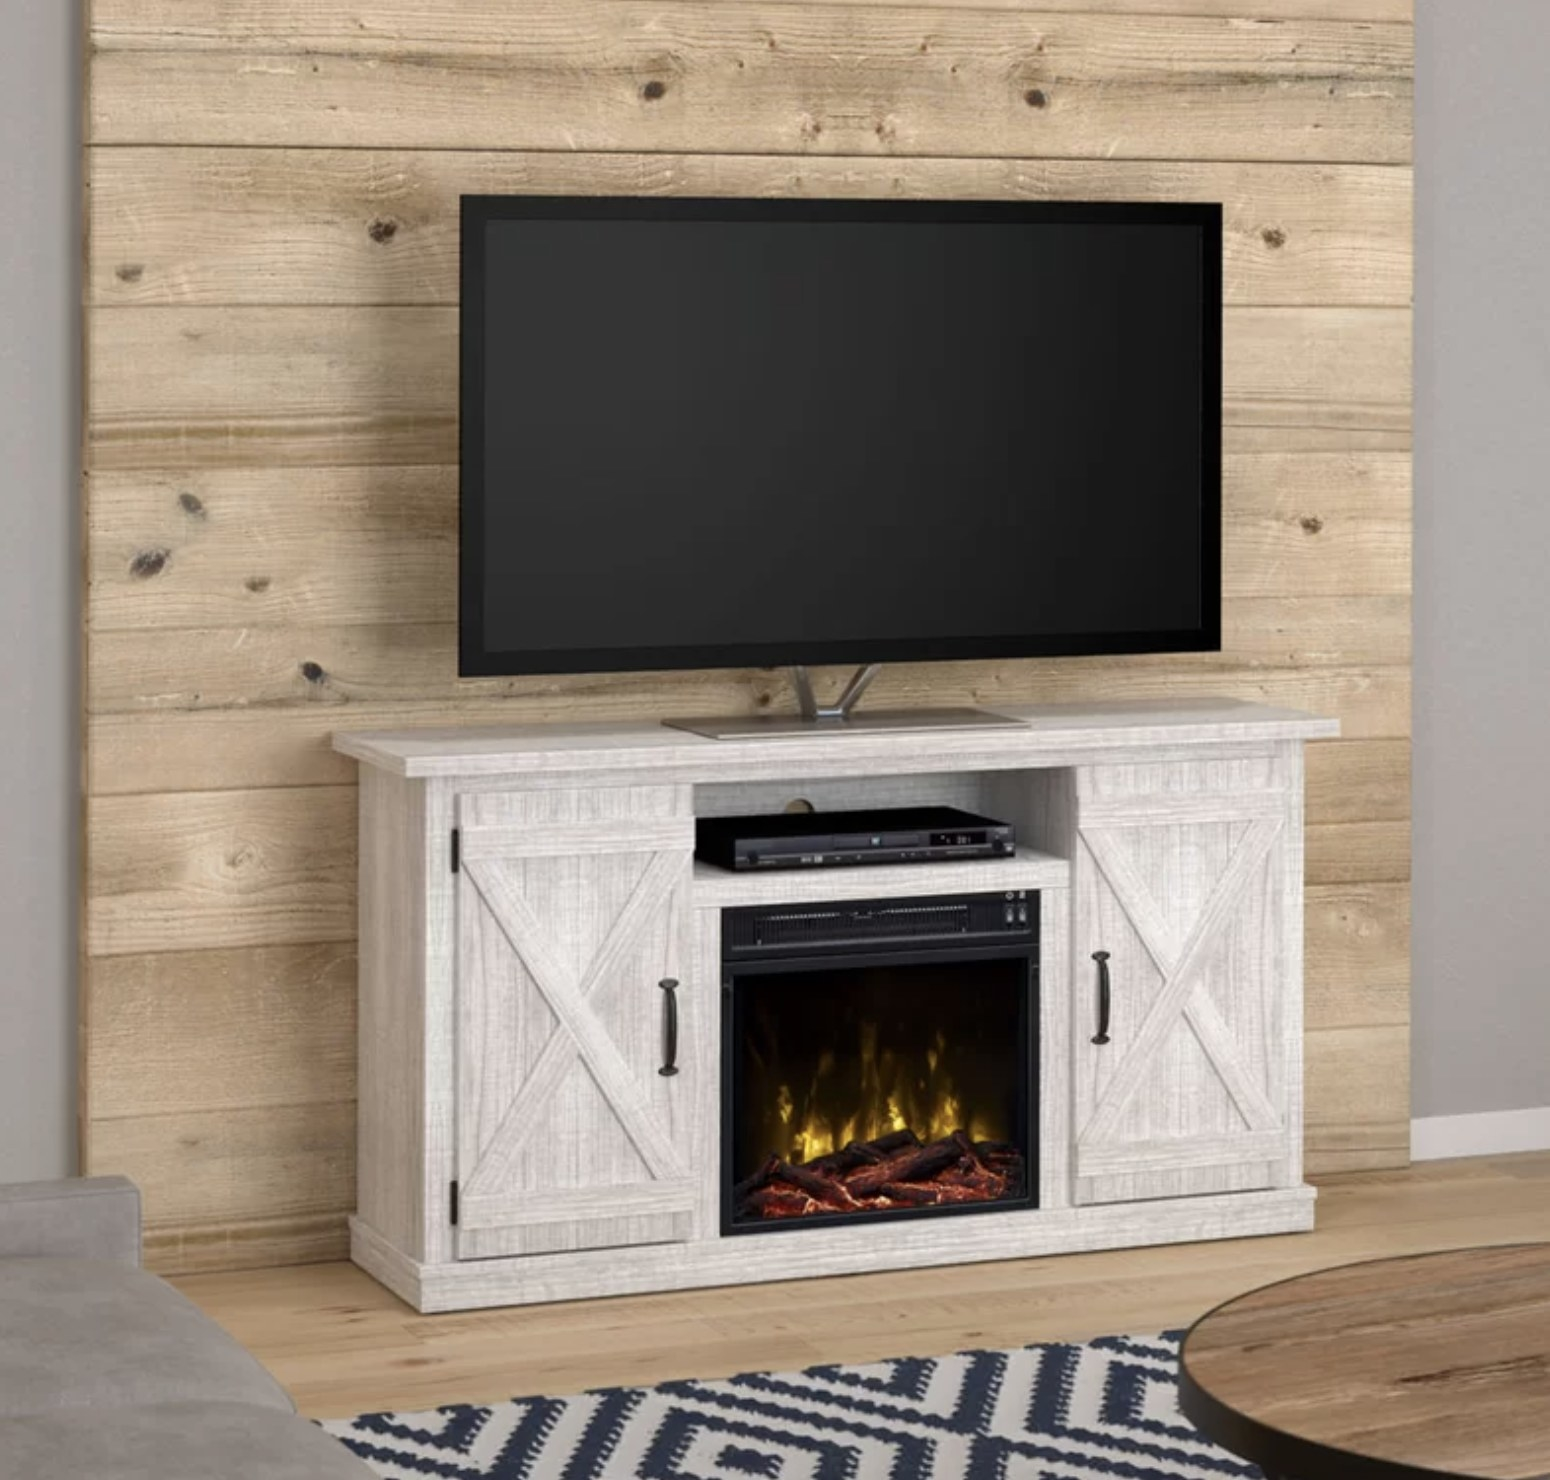 The TV stand with the fireplace lit